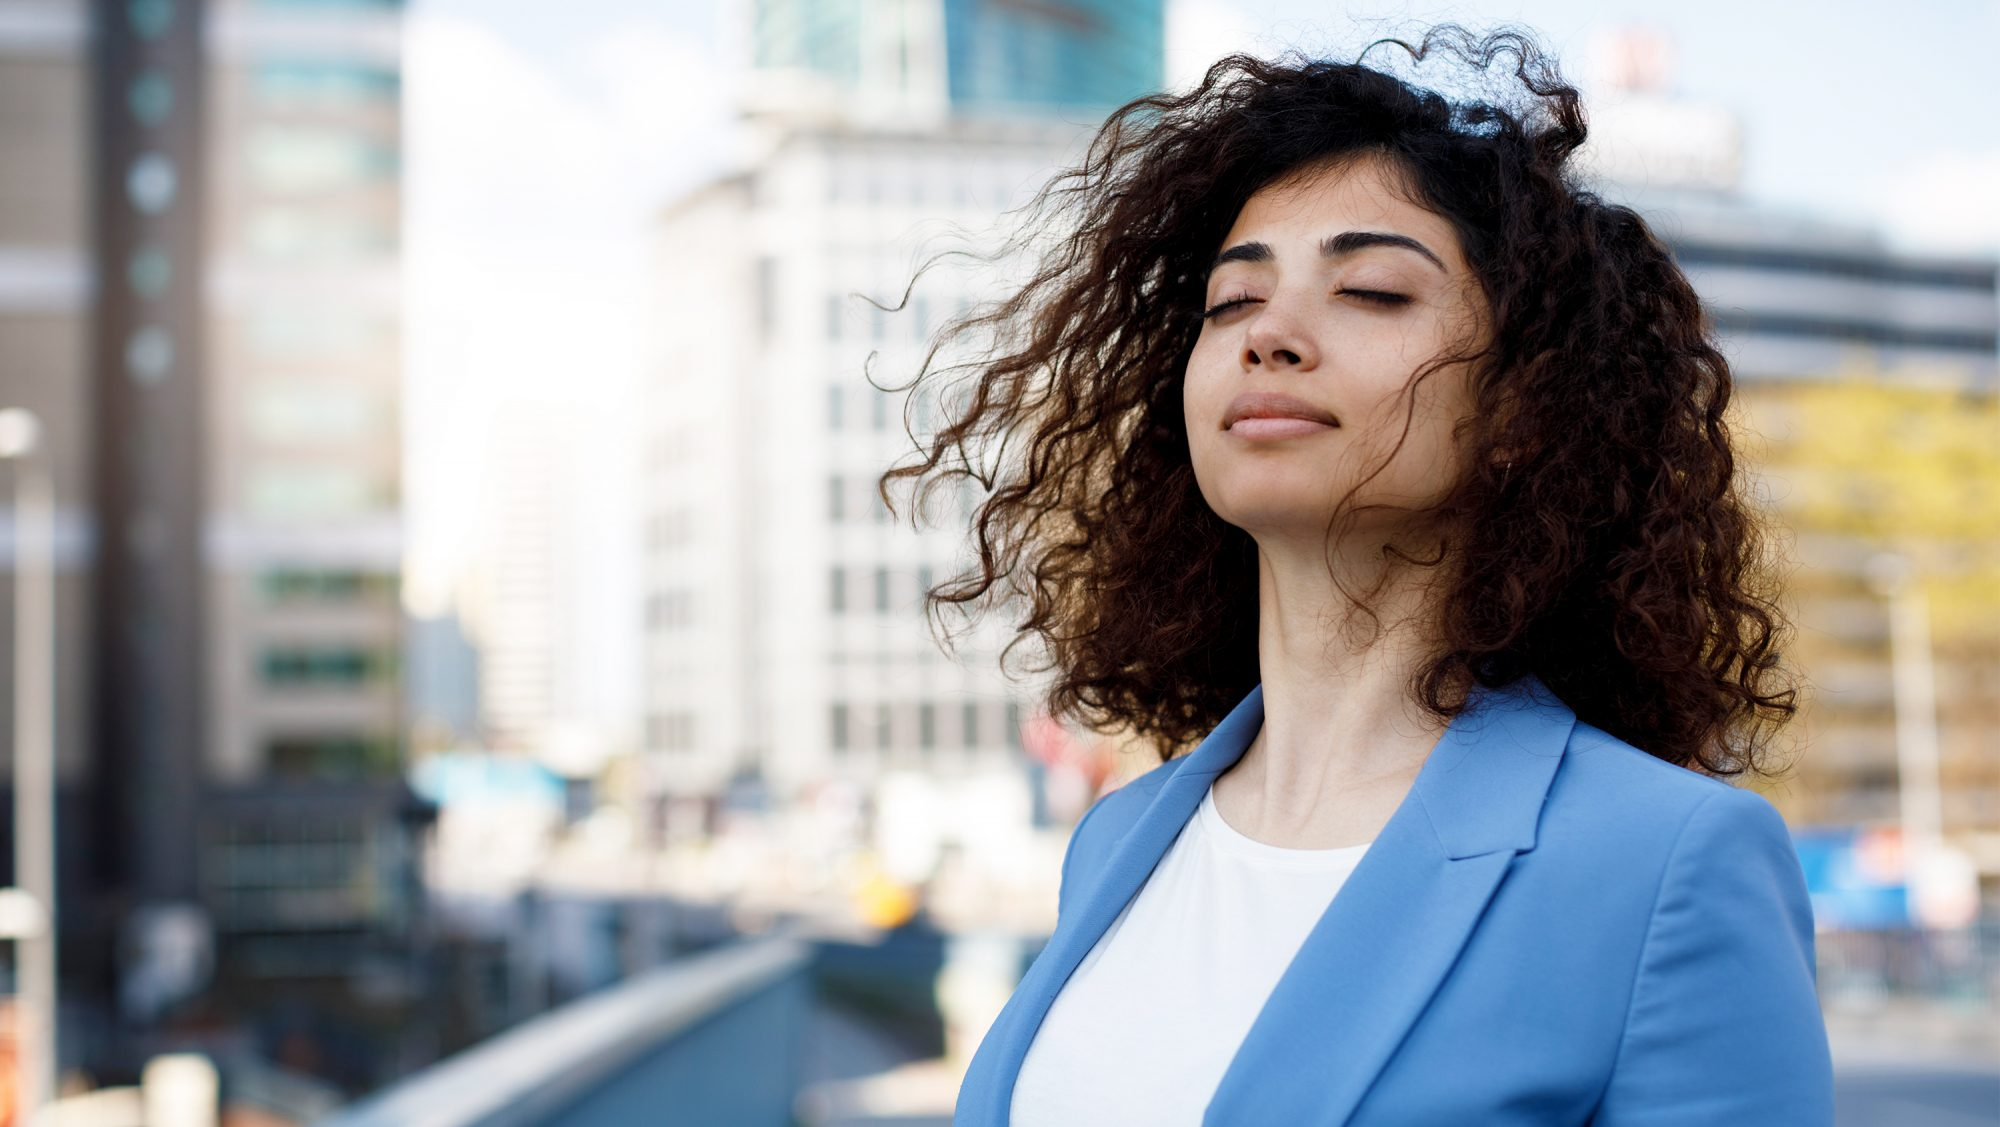 How to Meditate at Work: business woman closing her eyes outside